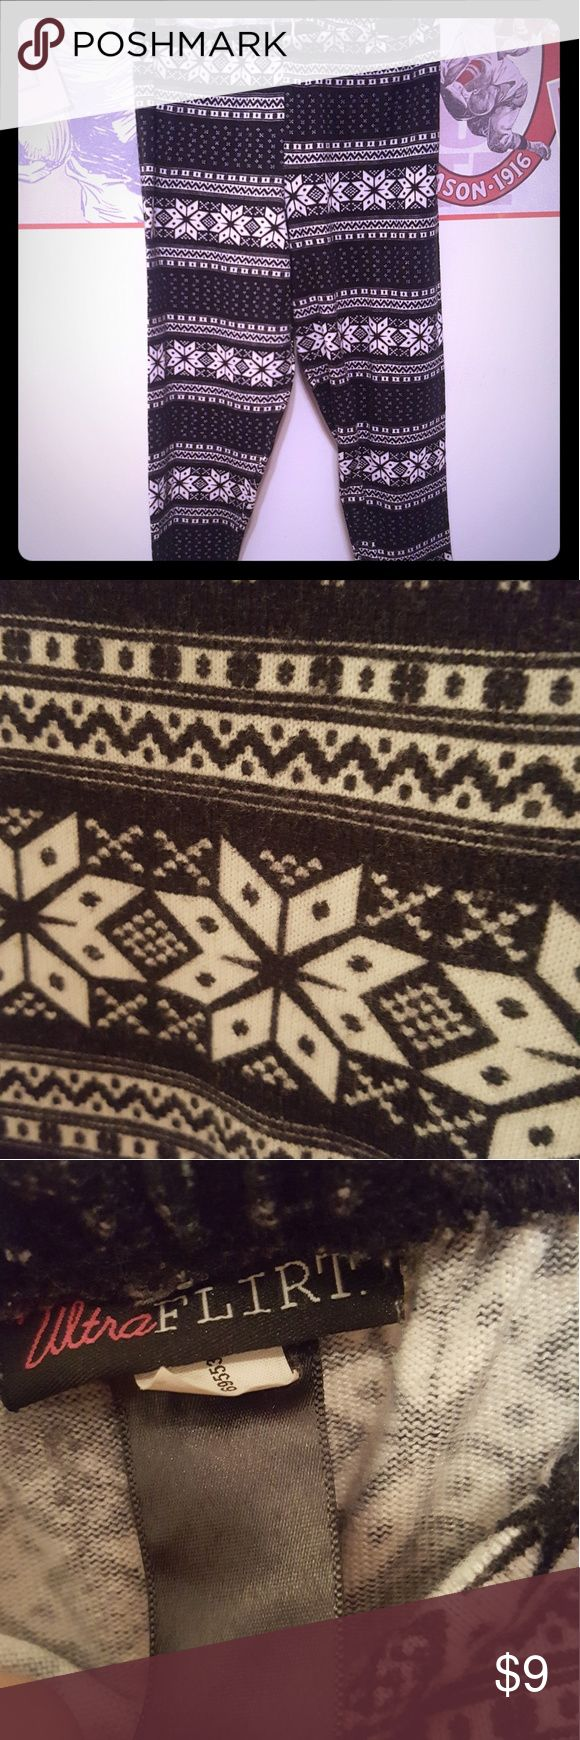 Snowflake Leggings Thicker material for those colder months. Tribal snowflake pattern. Size isn't listed, but I would say Medium. HAPPY POSHING! PRICE NEGOTIABLE! Ultra Flirt Pants Leggings